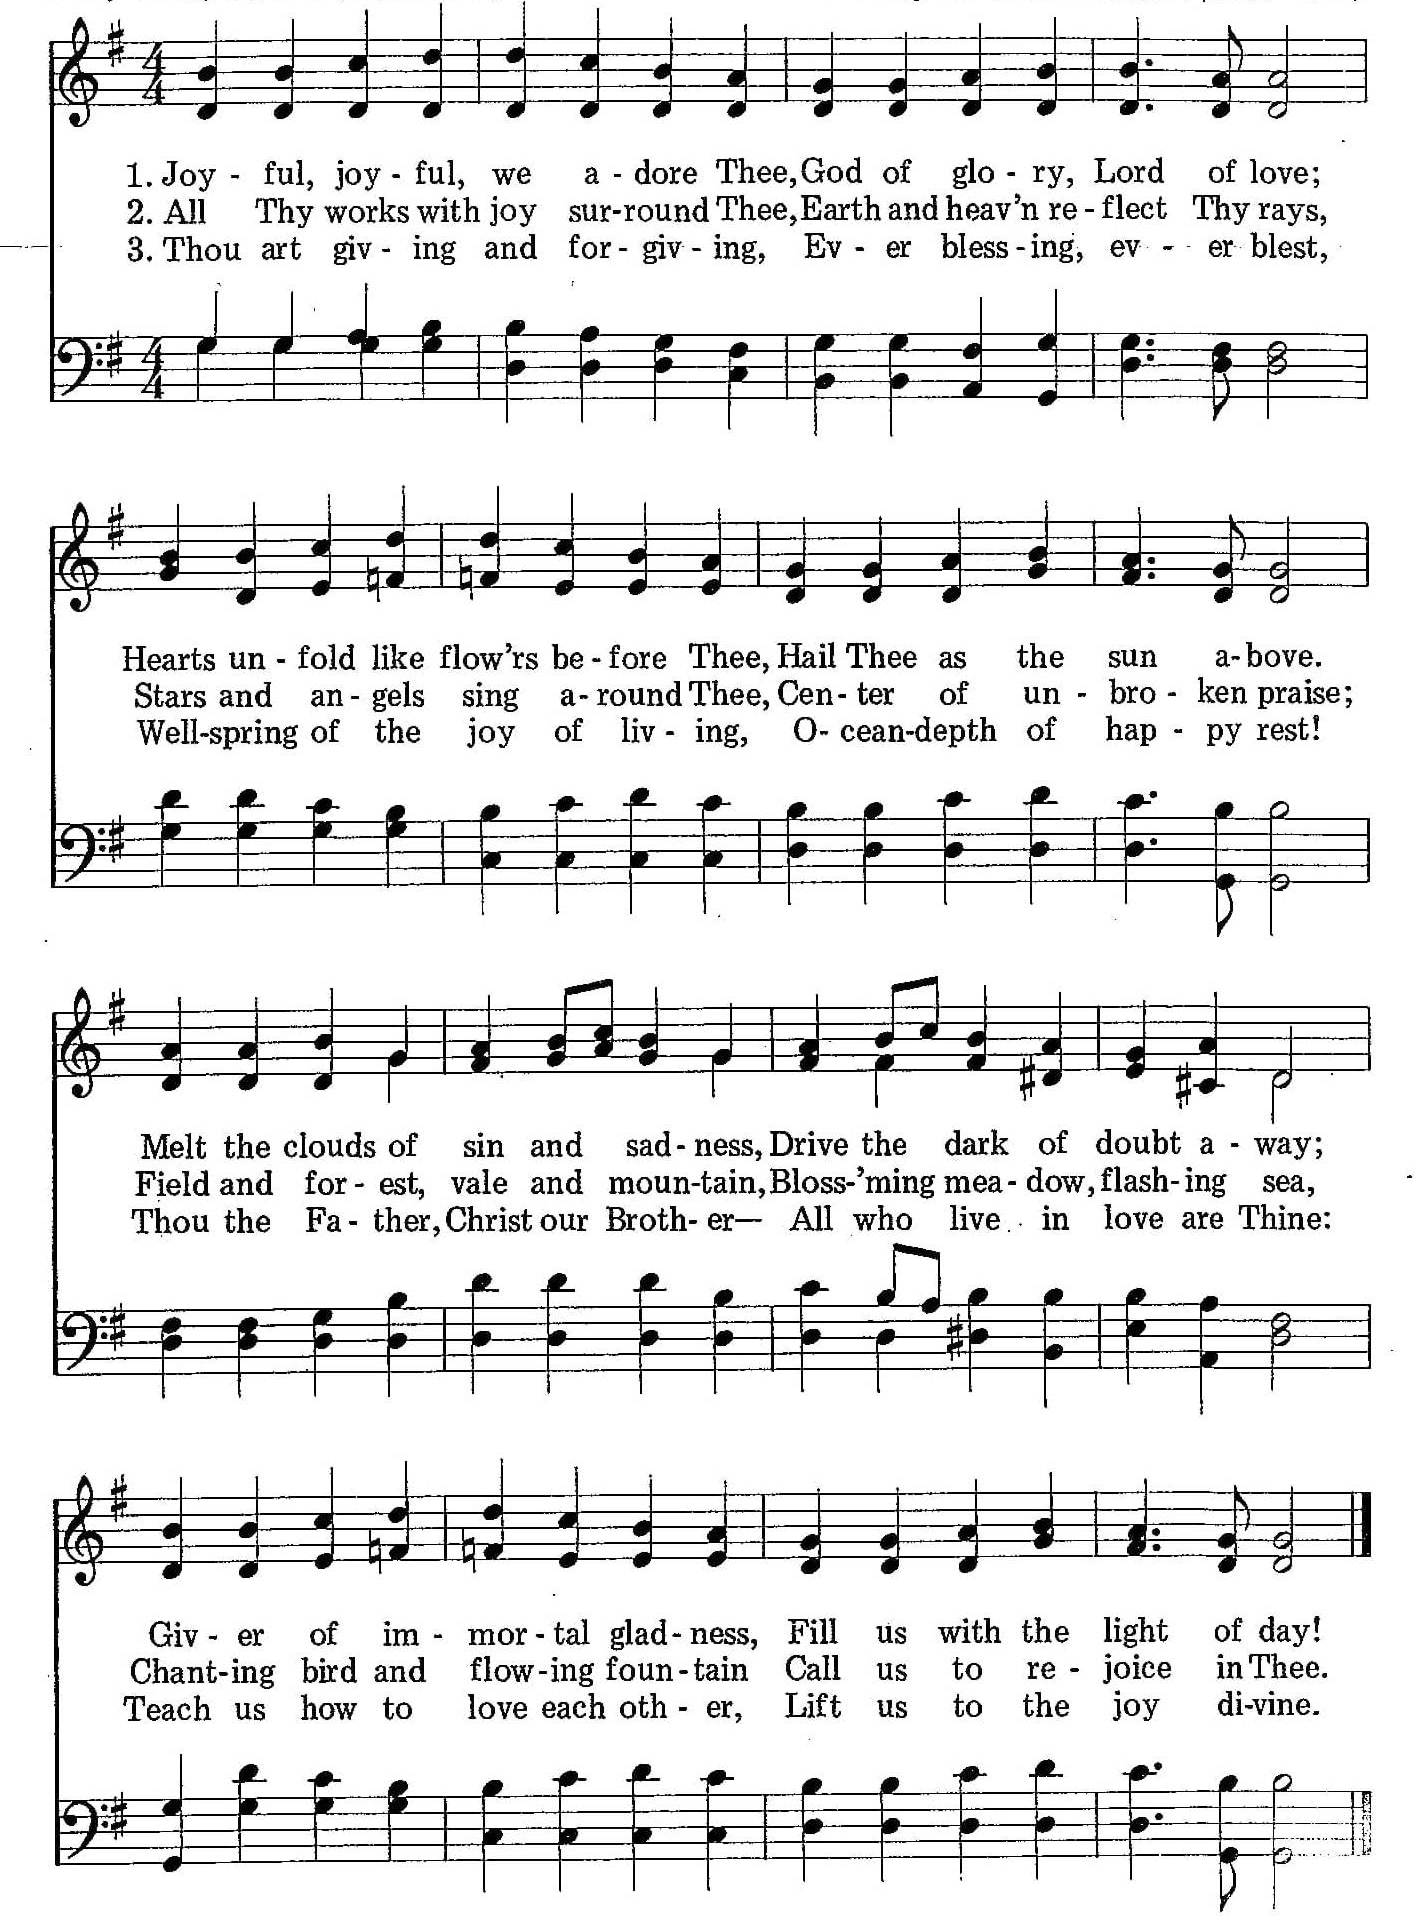 012 – Joyful, Joyful, We Adore Thee sheet music